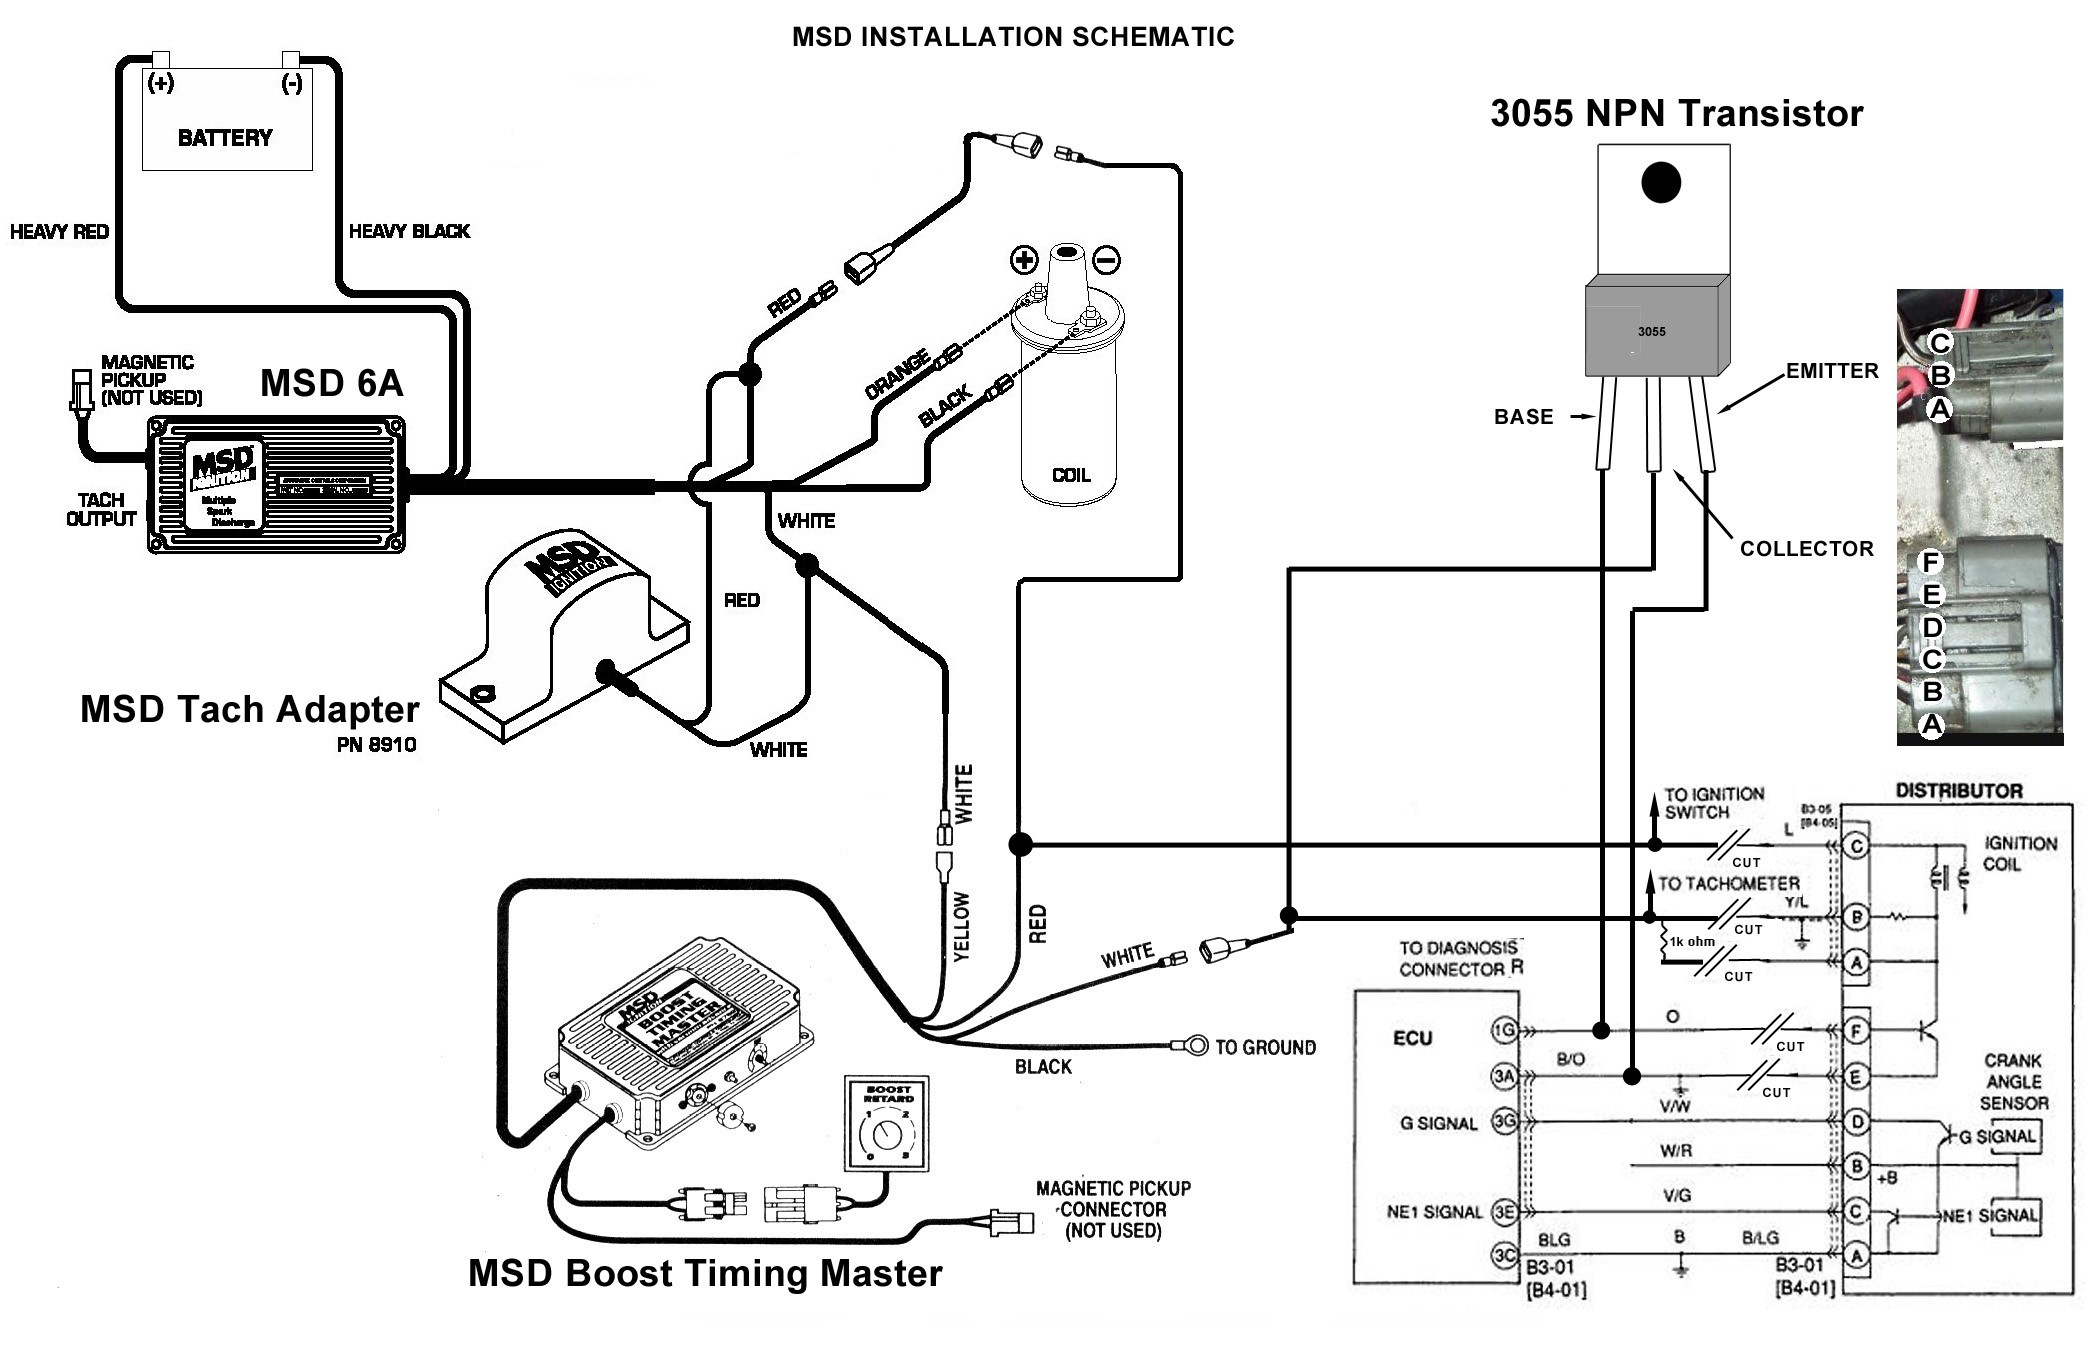 Bmw E36 Fuse Box Diagram Radiator Fan Relay Location 2012 Bmw Hood